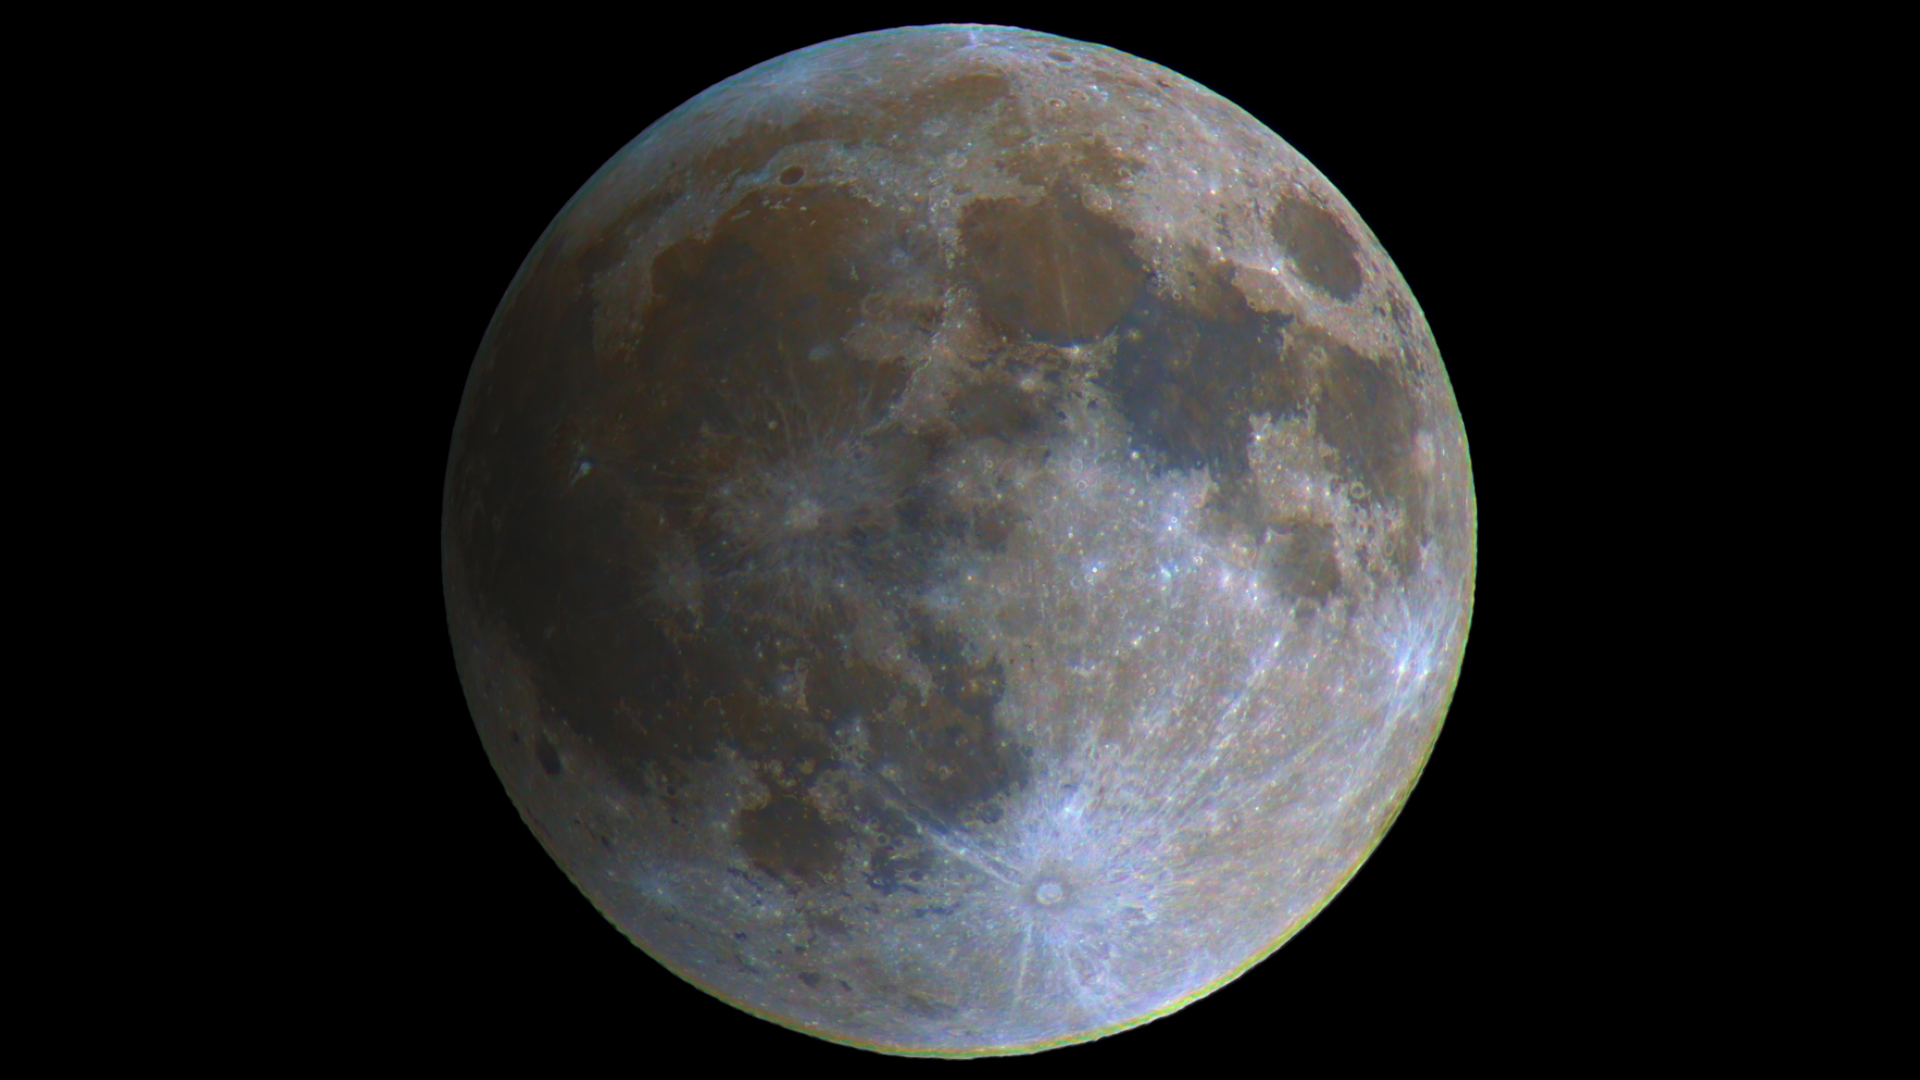 Moon just as the eclipse started with saturation boosted